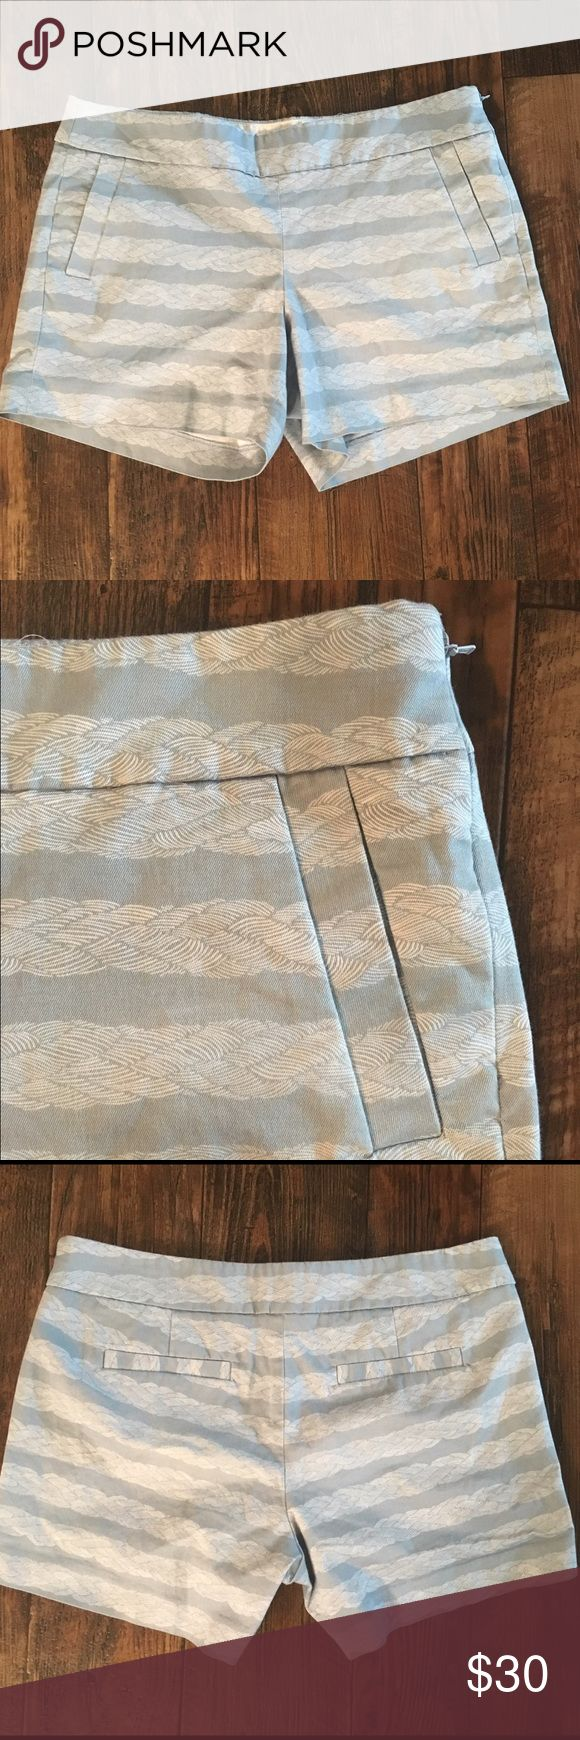 """J Crew Nautical Rope Print Stretch Chino Shorts 12 J Crew Sz 12 women  In excellent condition  Soooo cute!  Light blue-grey color, rope print shorts. Zips up the side. stretch - 98% cotton, 3% elastane. Measurements- 35"""" waist 13"""" long, waist to cuff J. Crew Shorts"""